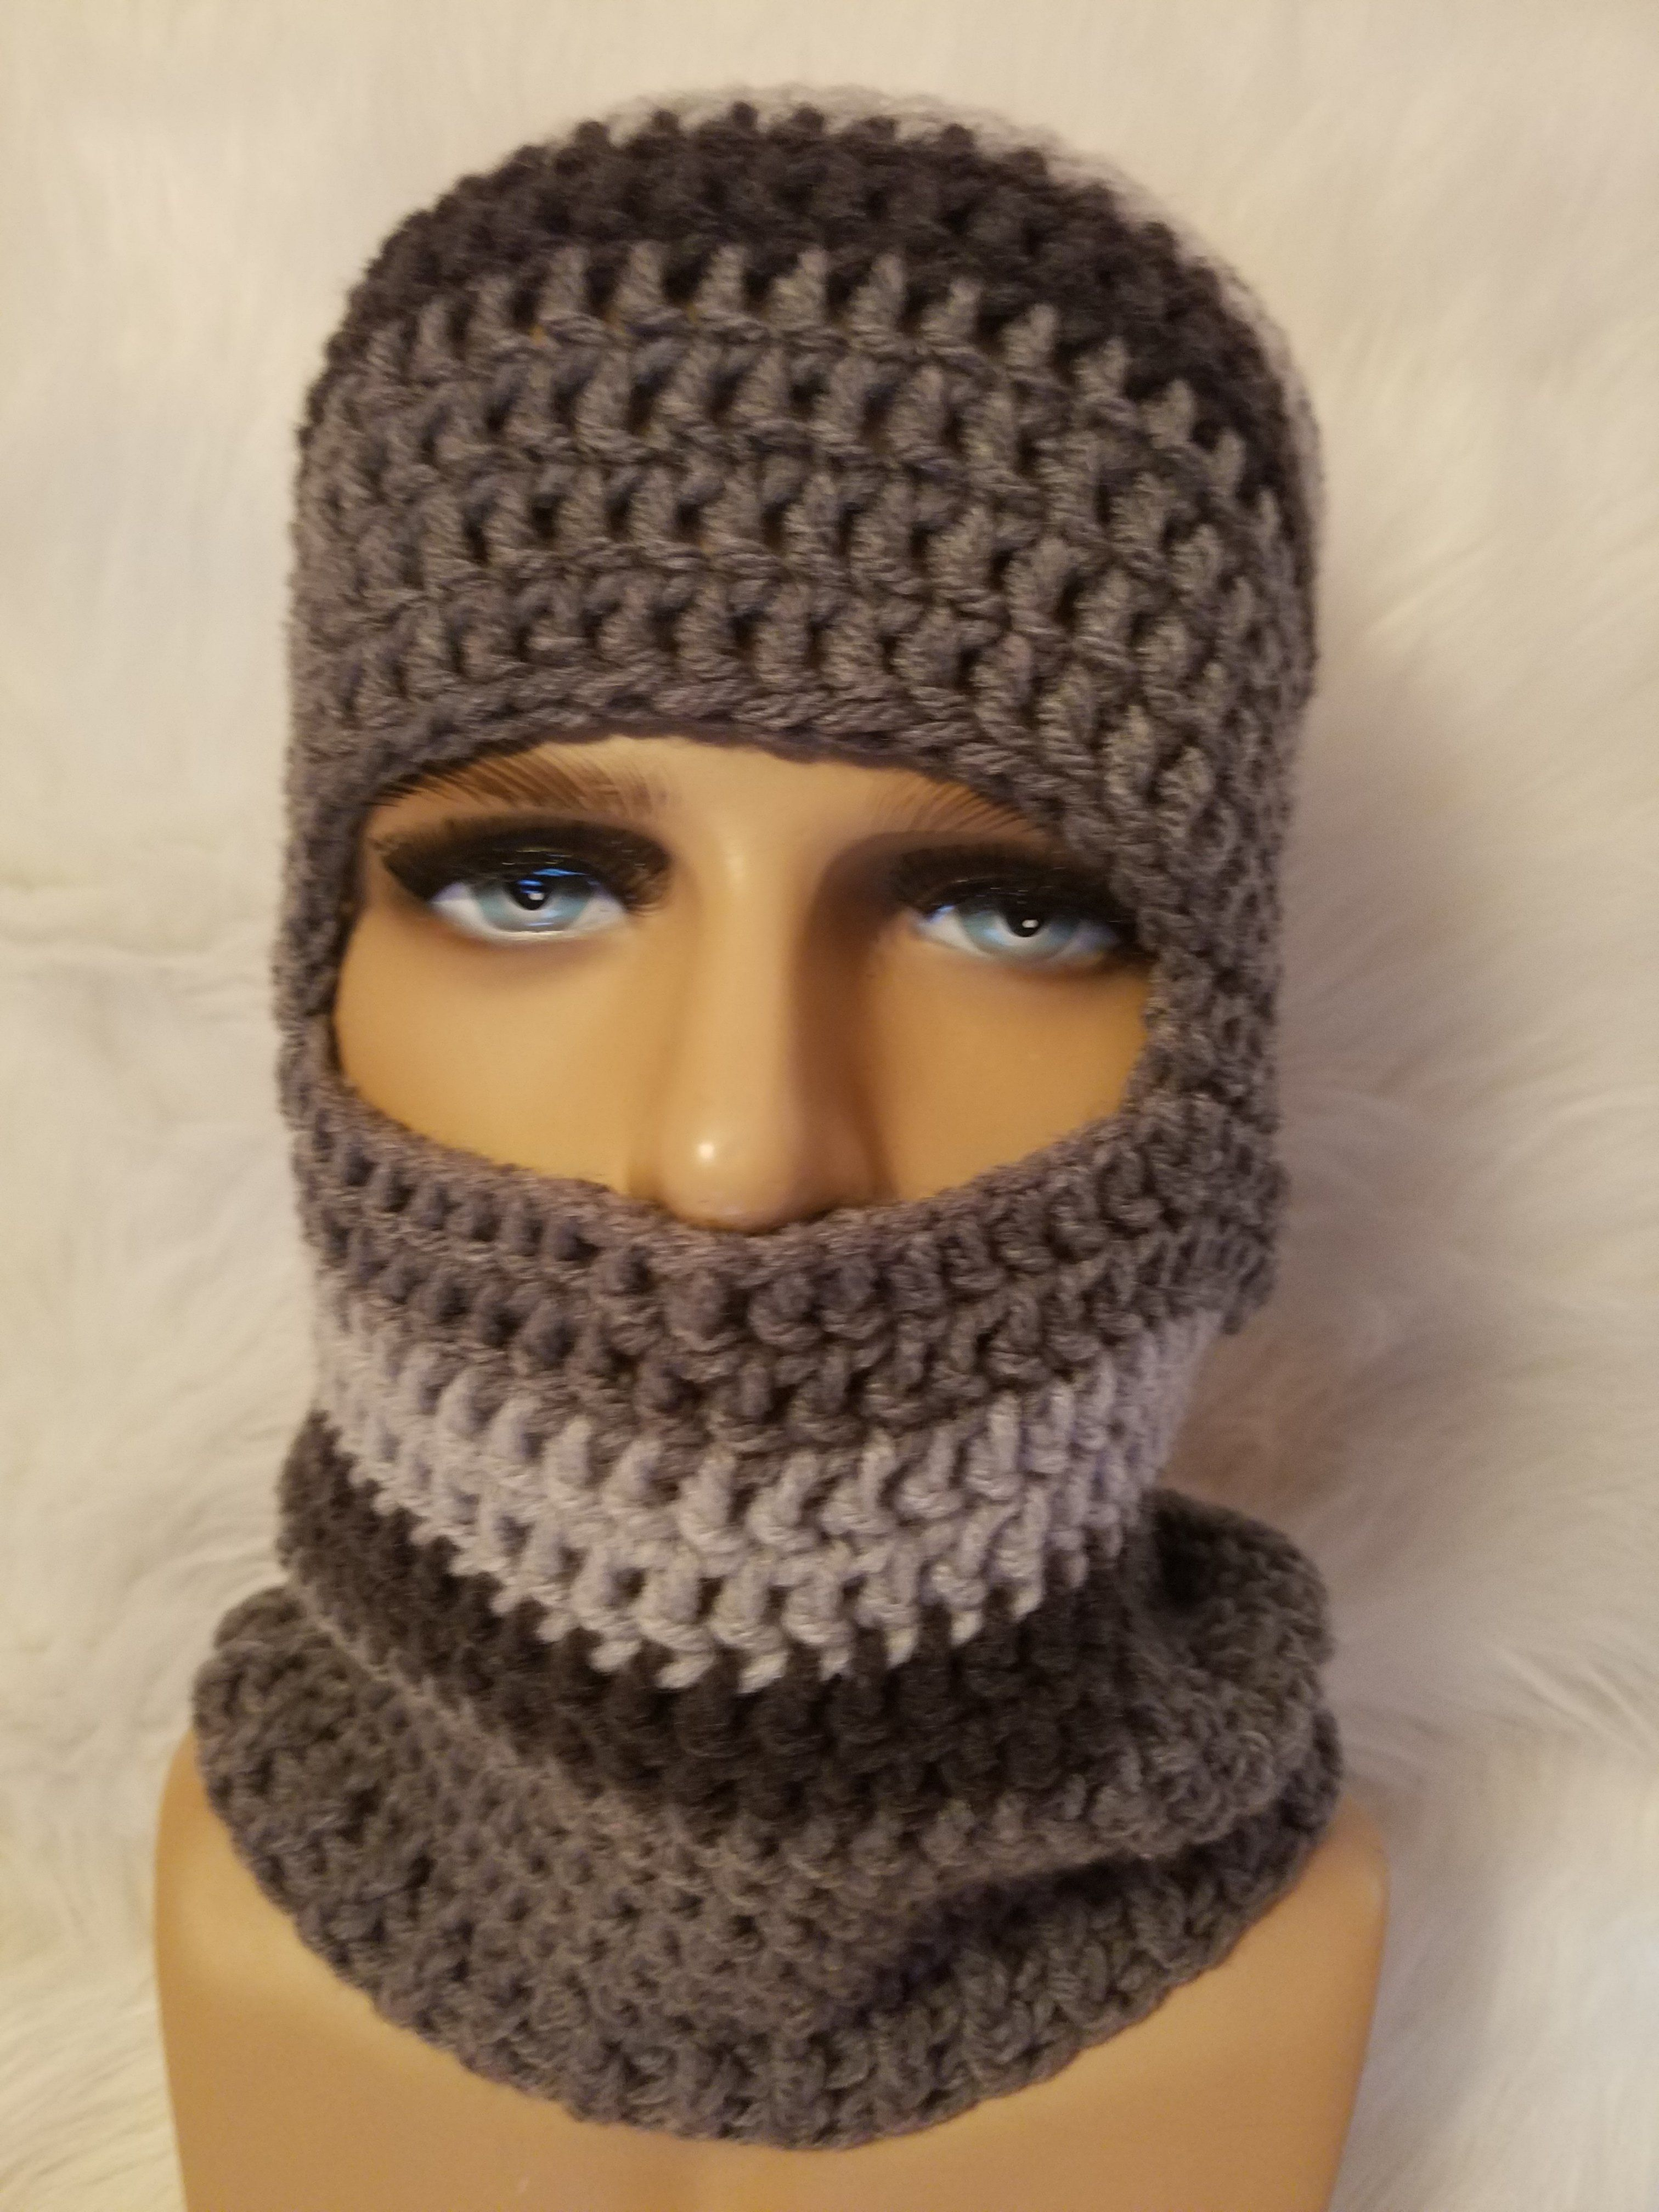 The Ultimate Ski Mask Is Great For The Winter Weather Our Ski Mask